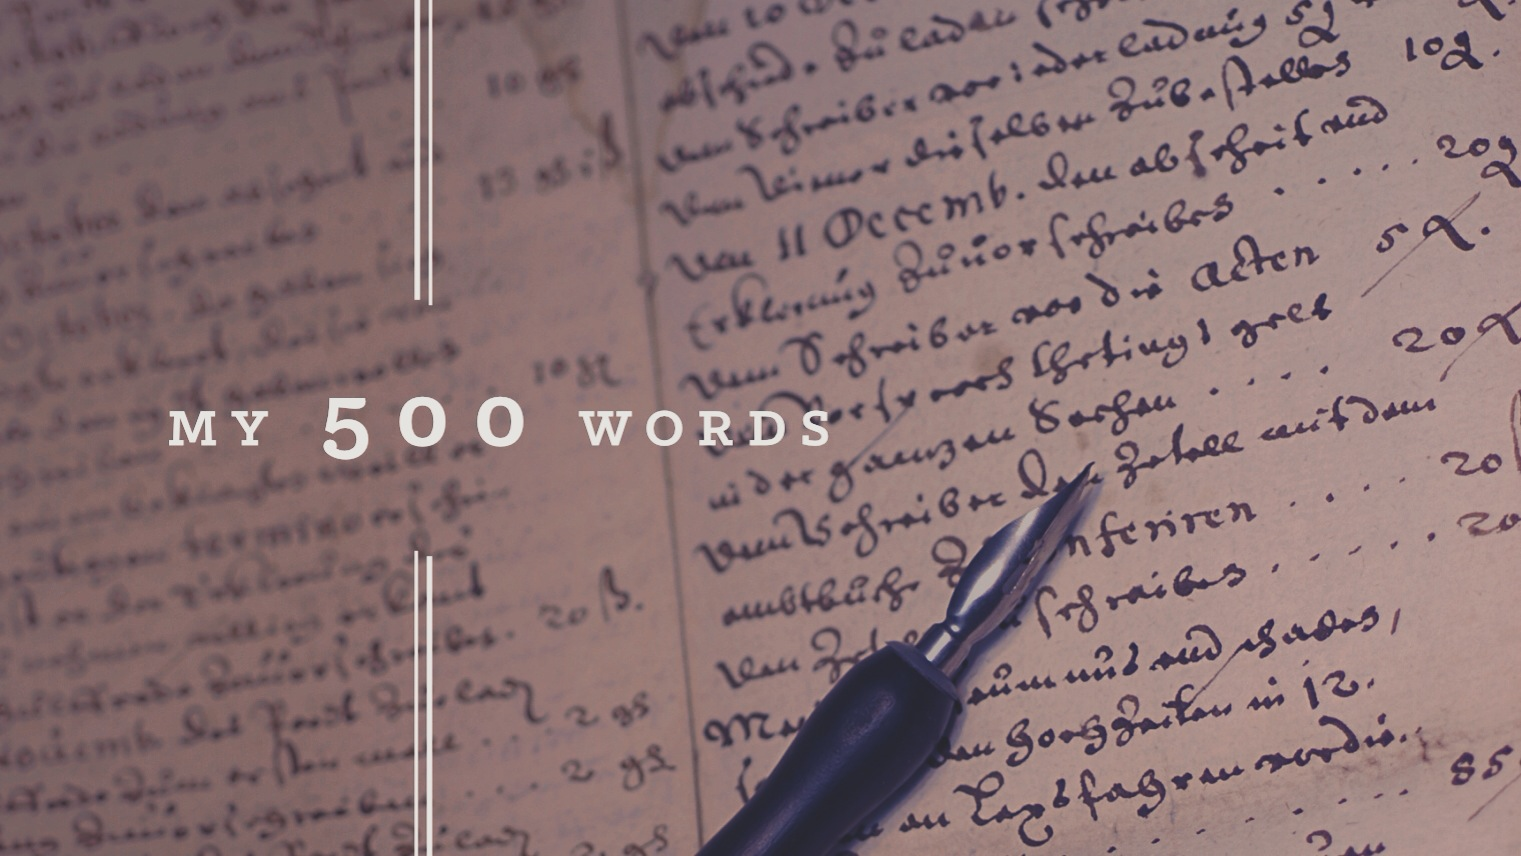 writing 500 word essays Writing a polished 500-word essay does not have to be difficult, or leave you feeling like you didn't have the space to shine follow these tips and a 500-word admissions essay limit should be no problem.